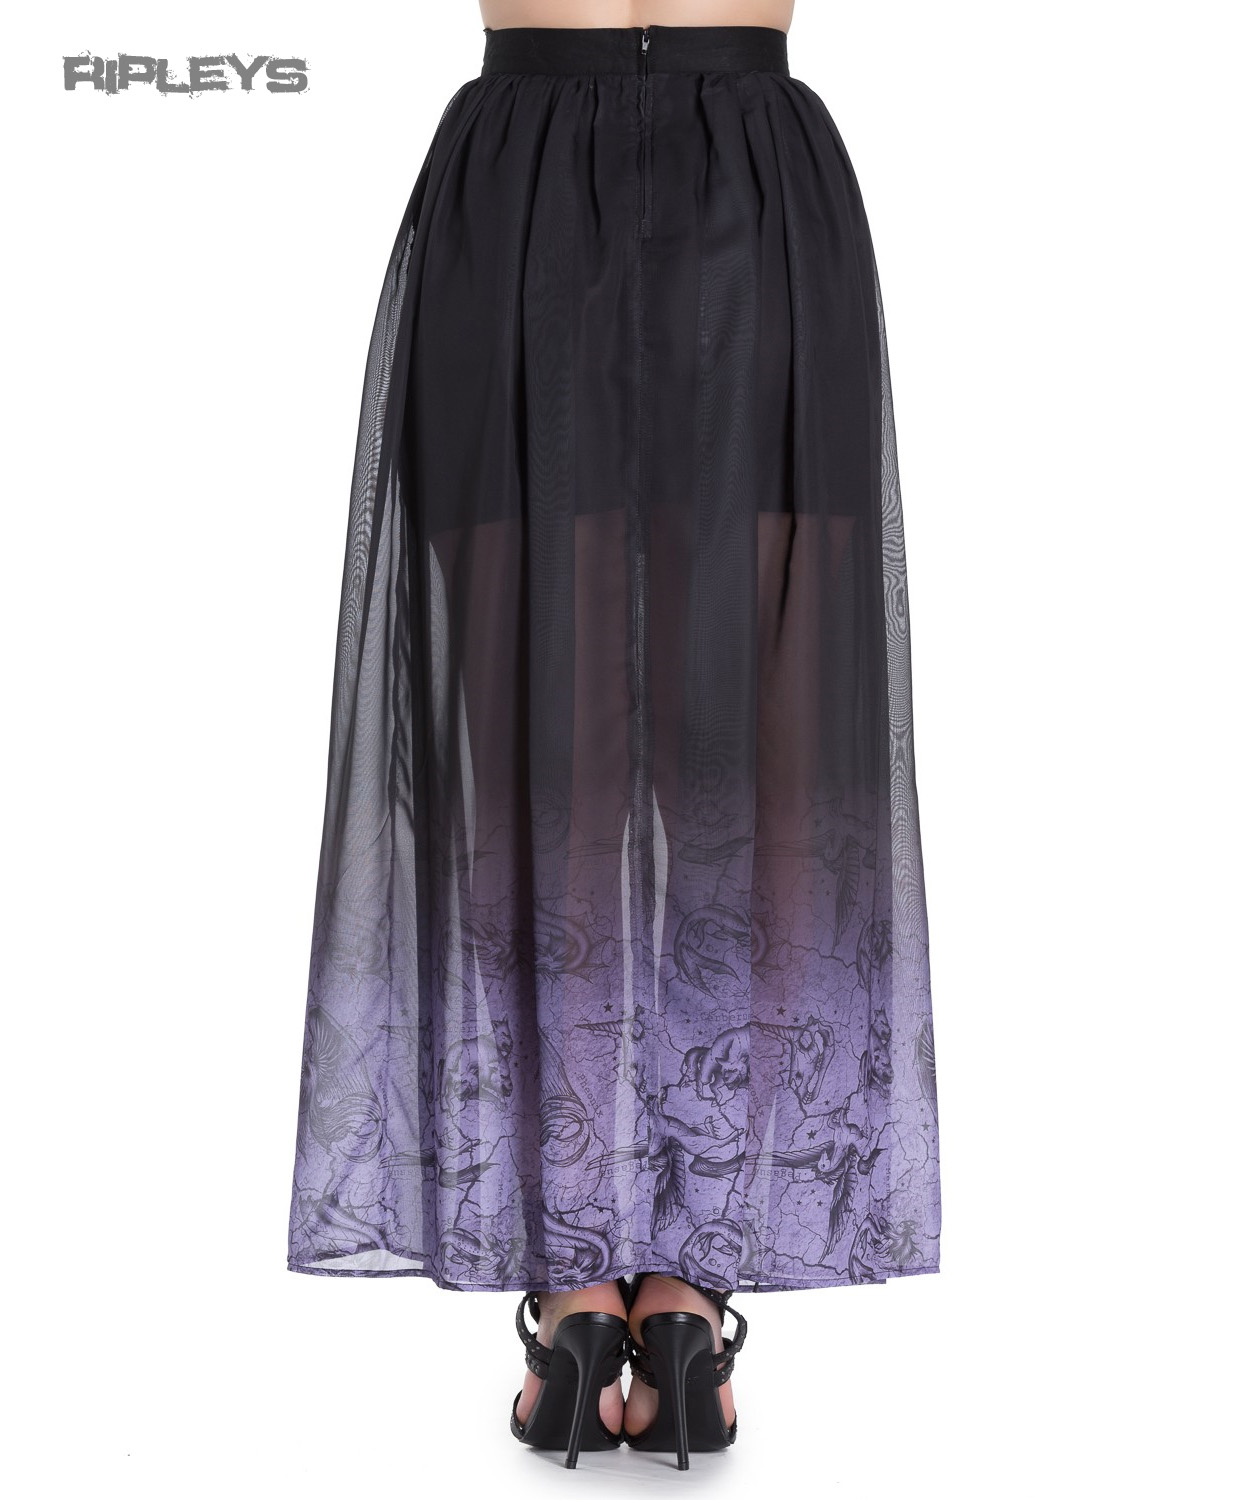 Hell-Bunny-Spin-Doctor-Goth-Purple-Mystical-EVADINE-Maxi-Skirt-All-Sizes thumbnail 8